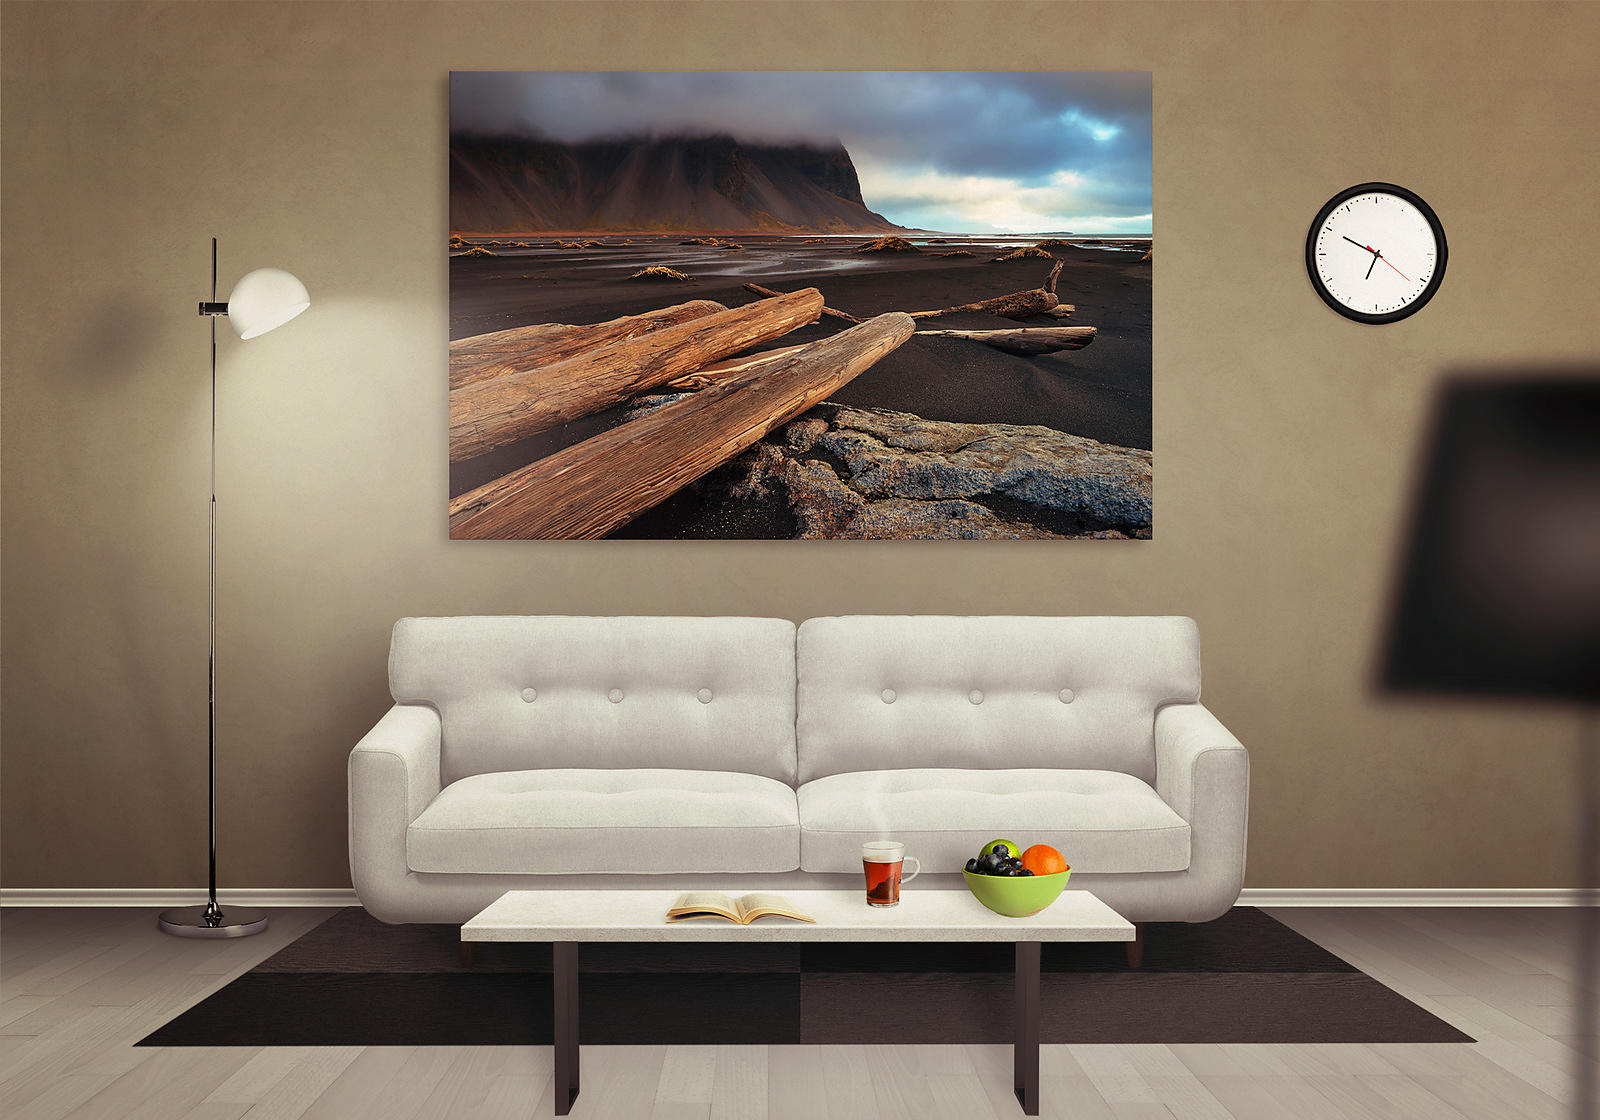 Canvas of an image at Vestrahorn in Iceland